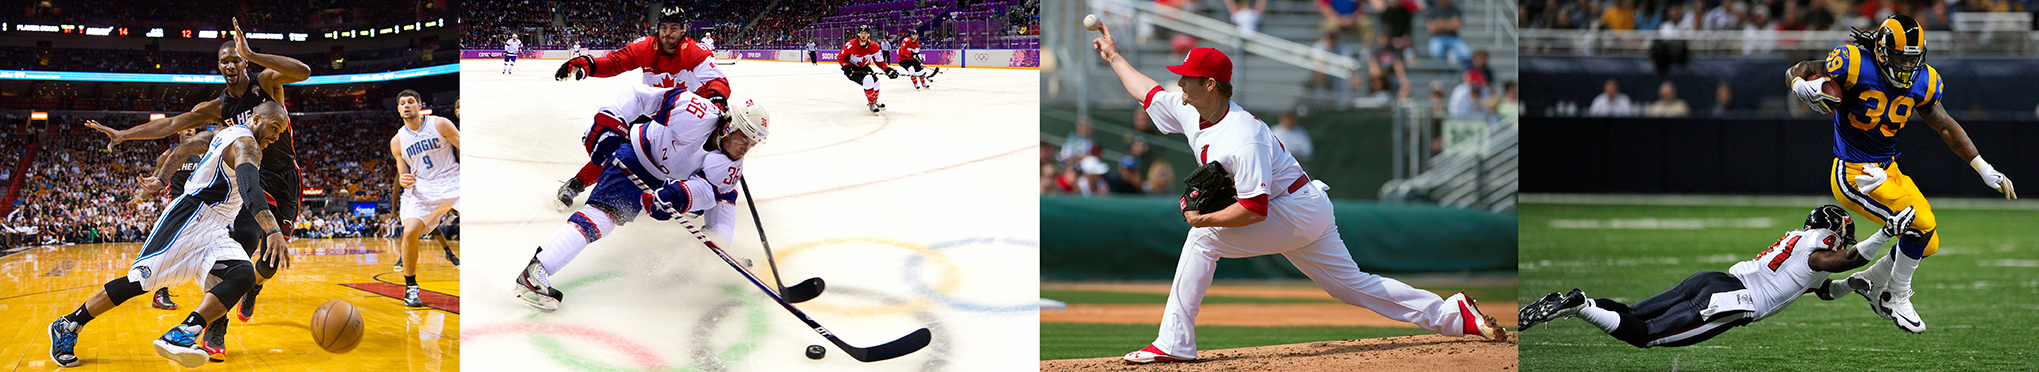 Get some great inside tips on shooting both outdoor and indoor sports from Scott Novak!